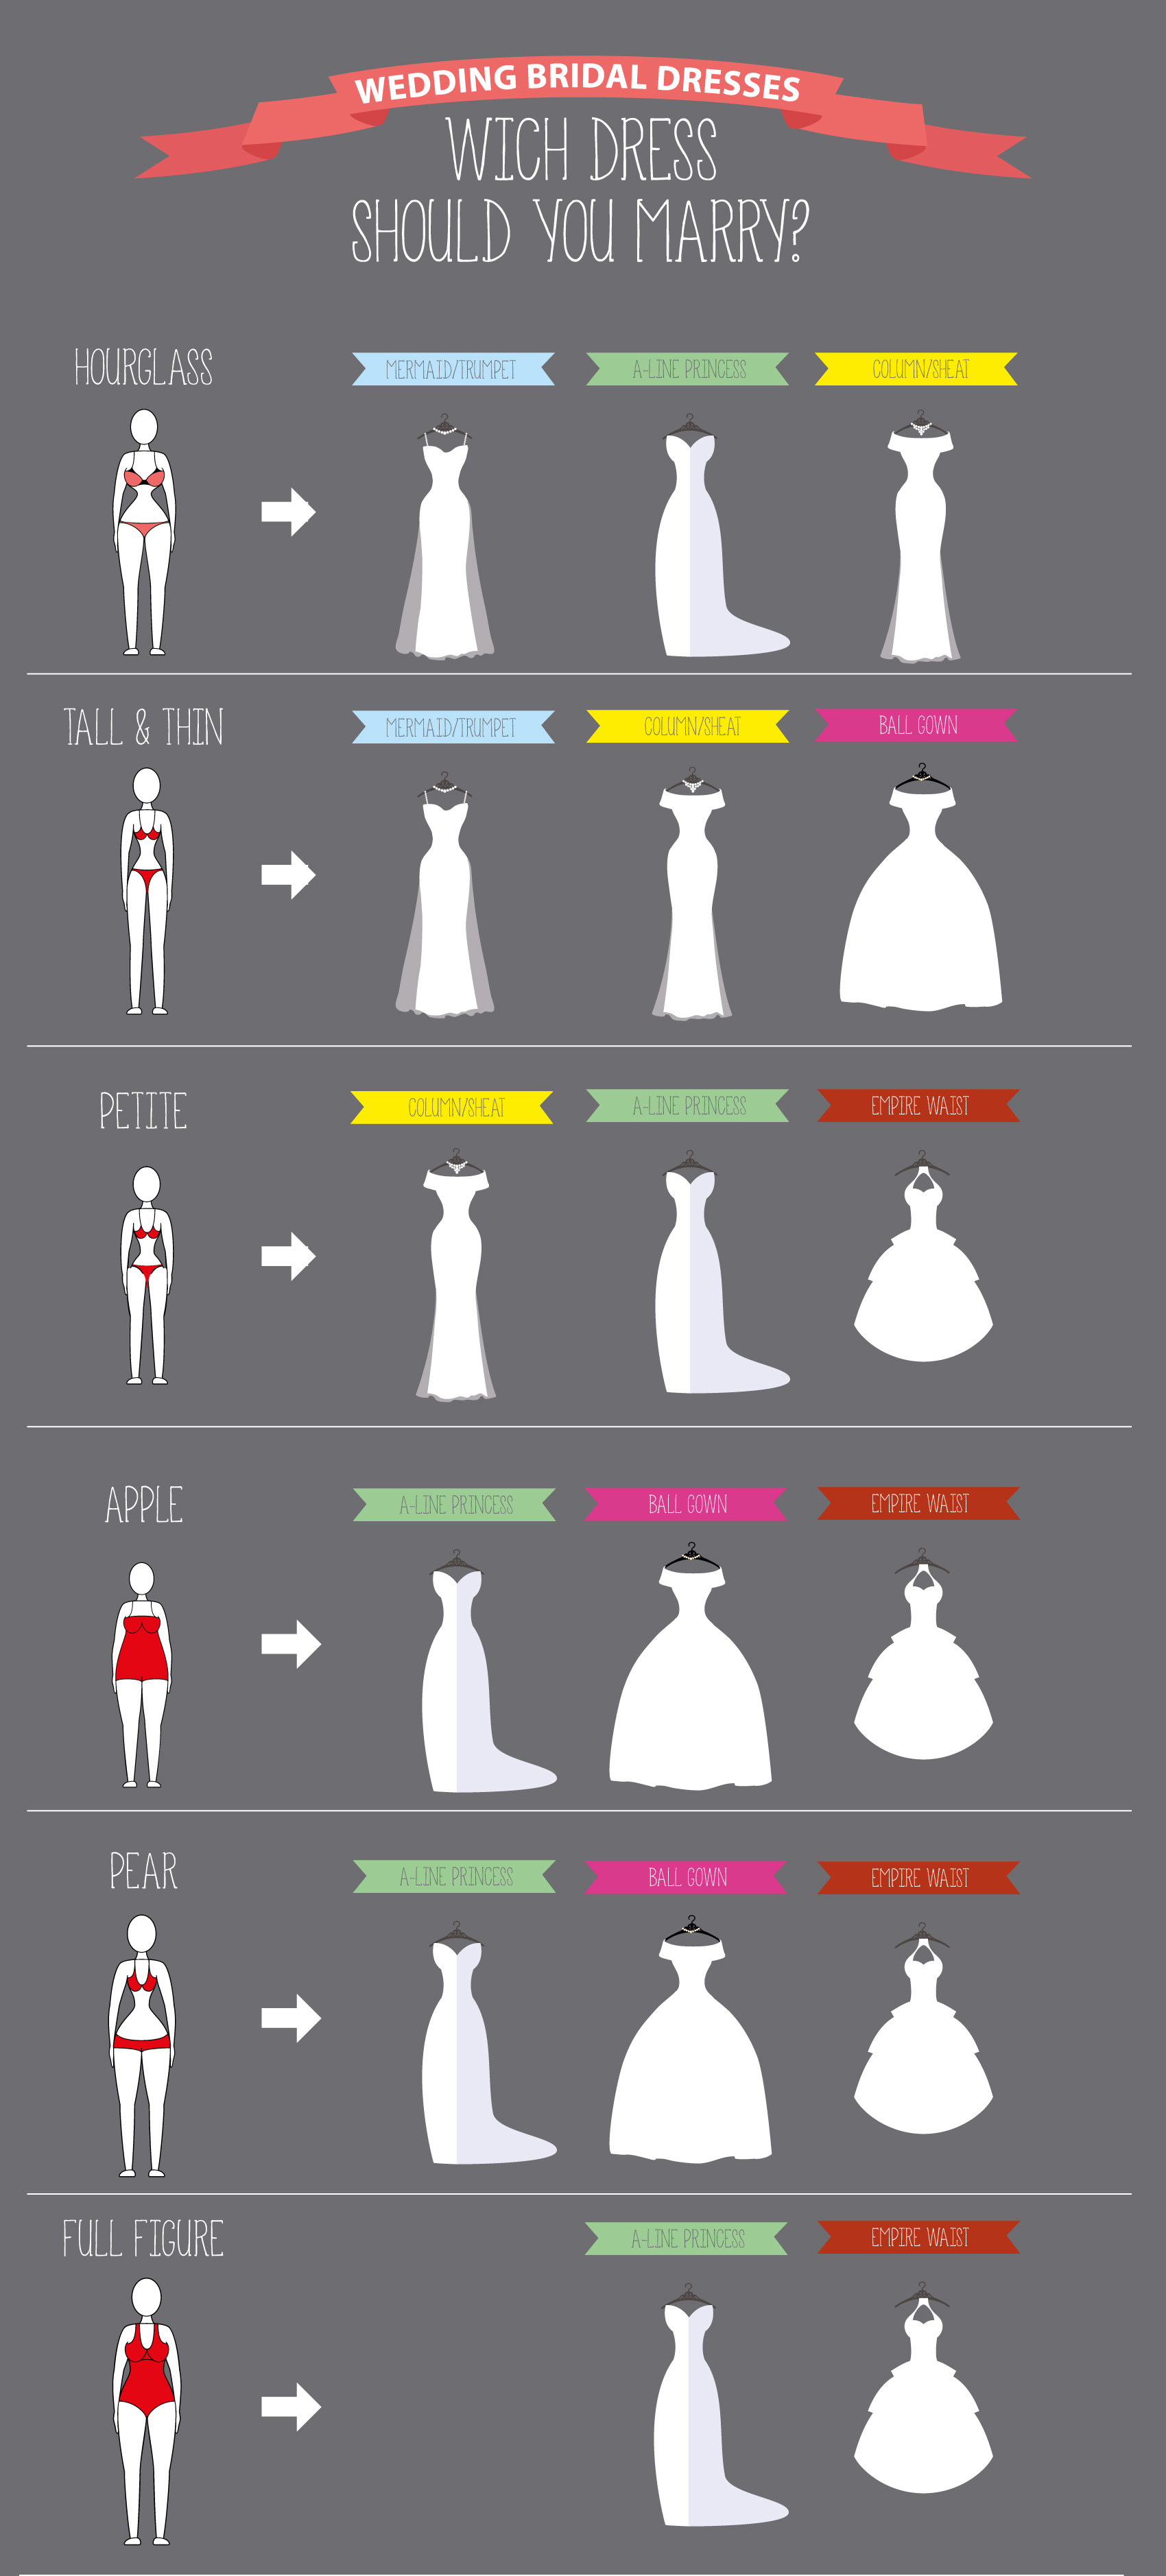 eca379f7f1 How-To Guide  Finding the Perfect Gown for Your Body Type - BridalPulse